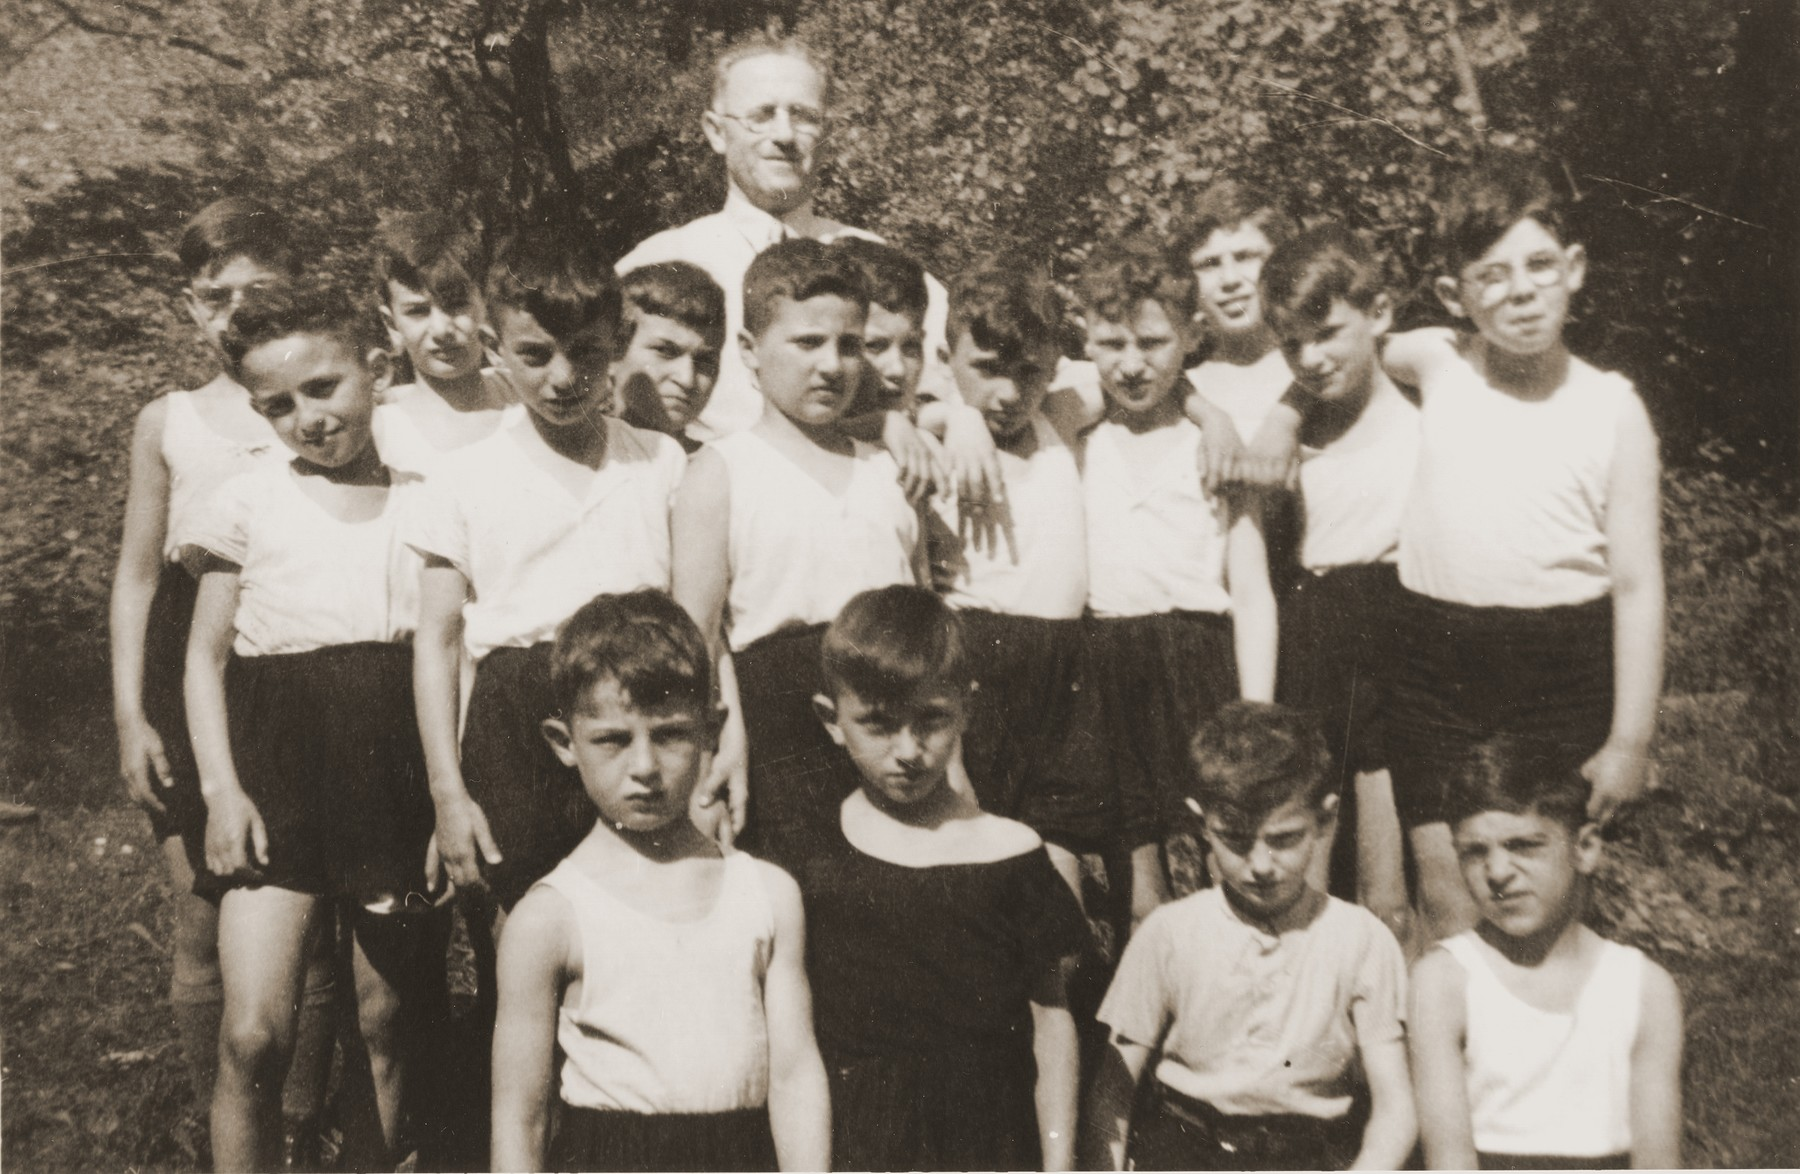 Group portrait of Jewish children who are members of the Hakoach sports club in Essen.    Among those pictured is Heinz Straus (back row, second from the left).